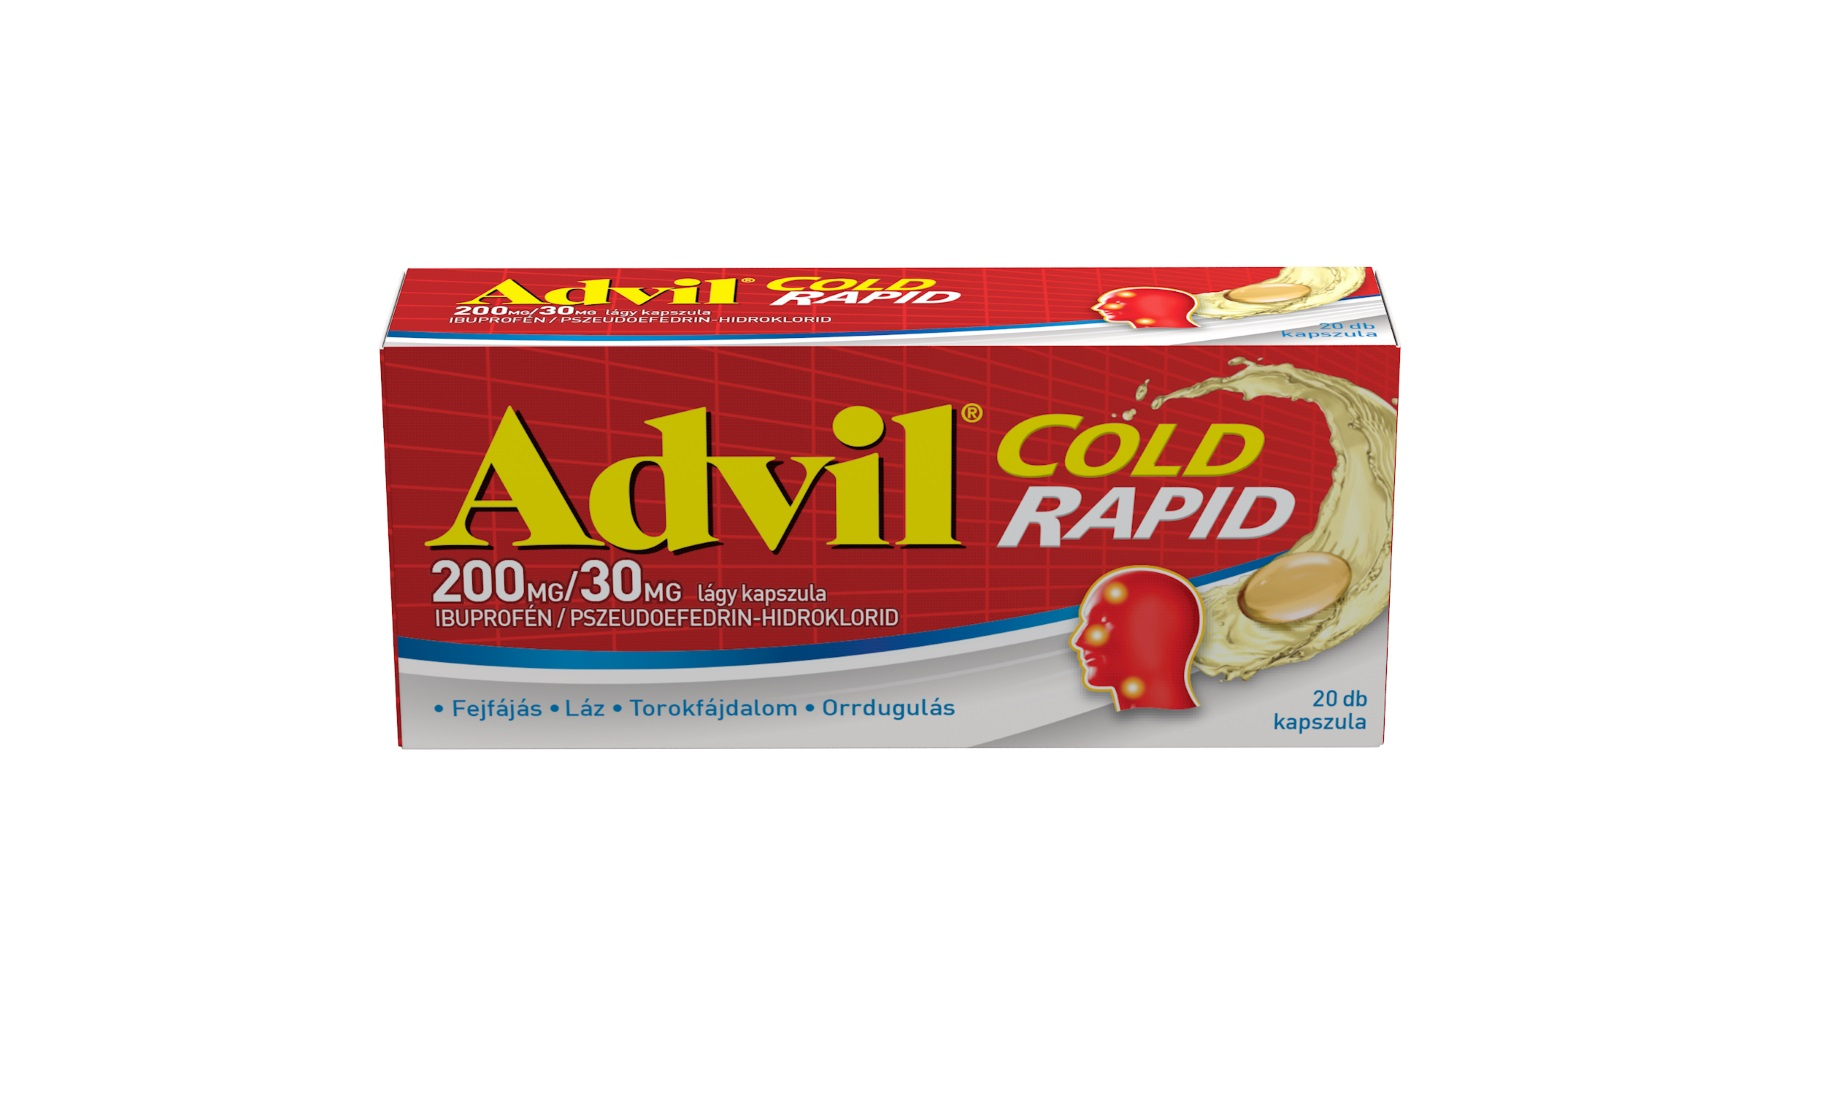 Advil Cold Rapid lágy kapszula